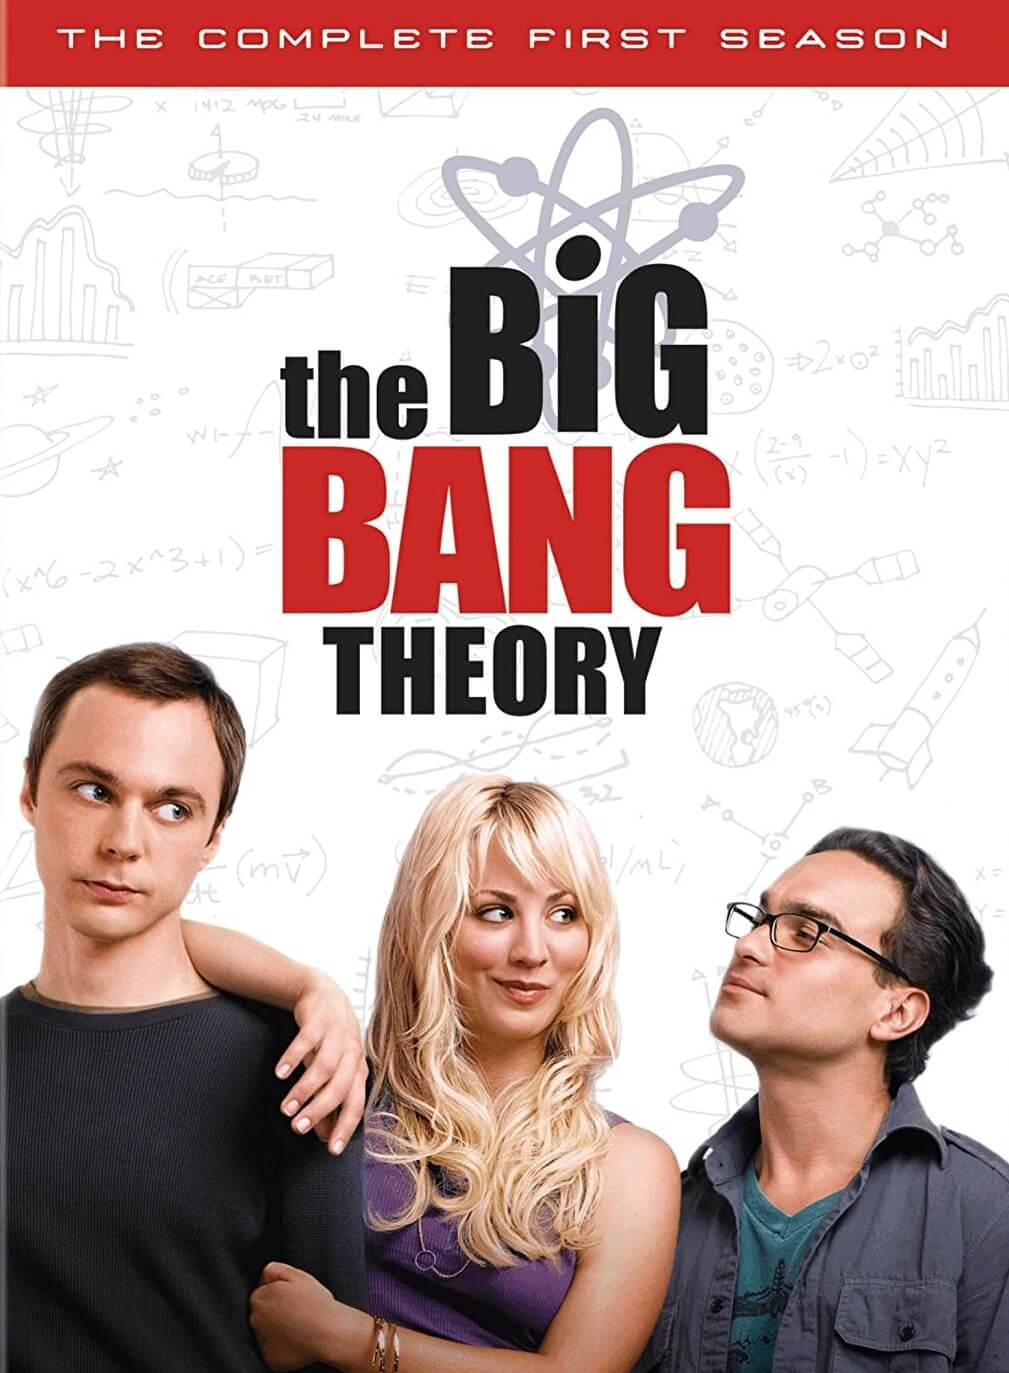 The Big Bang Theory S01 E08